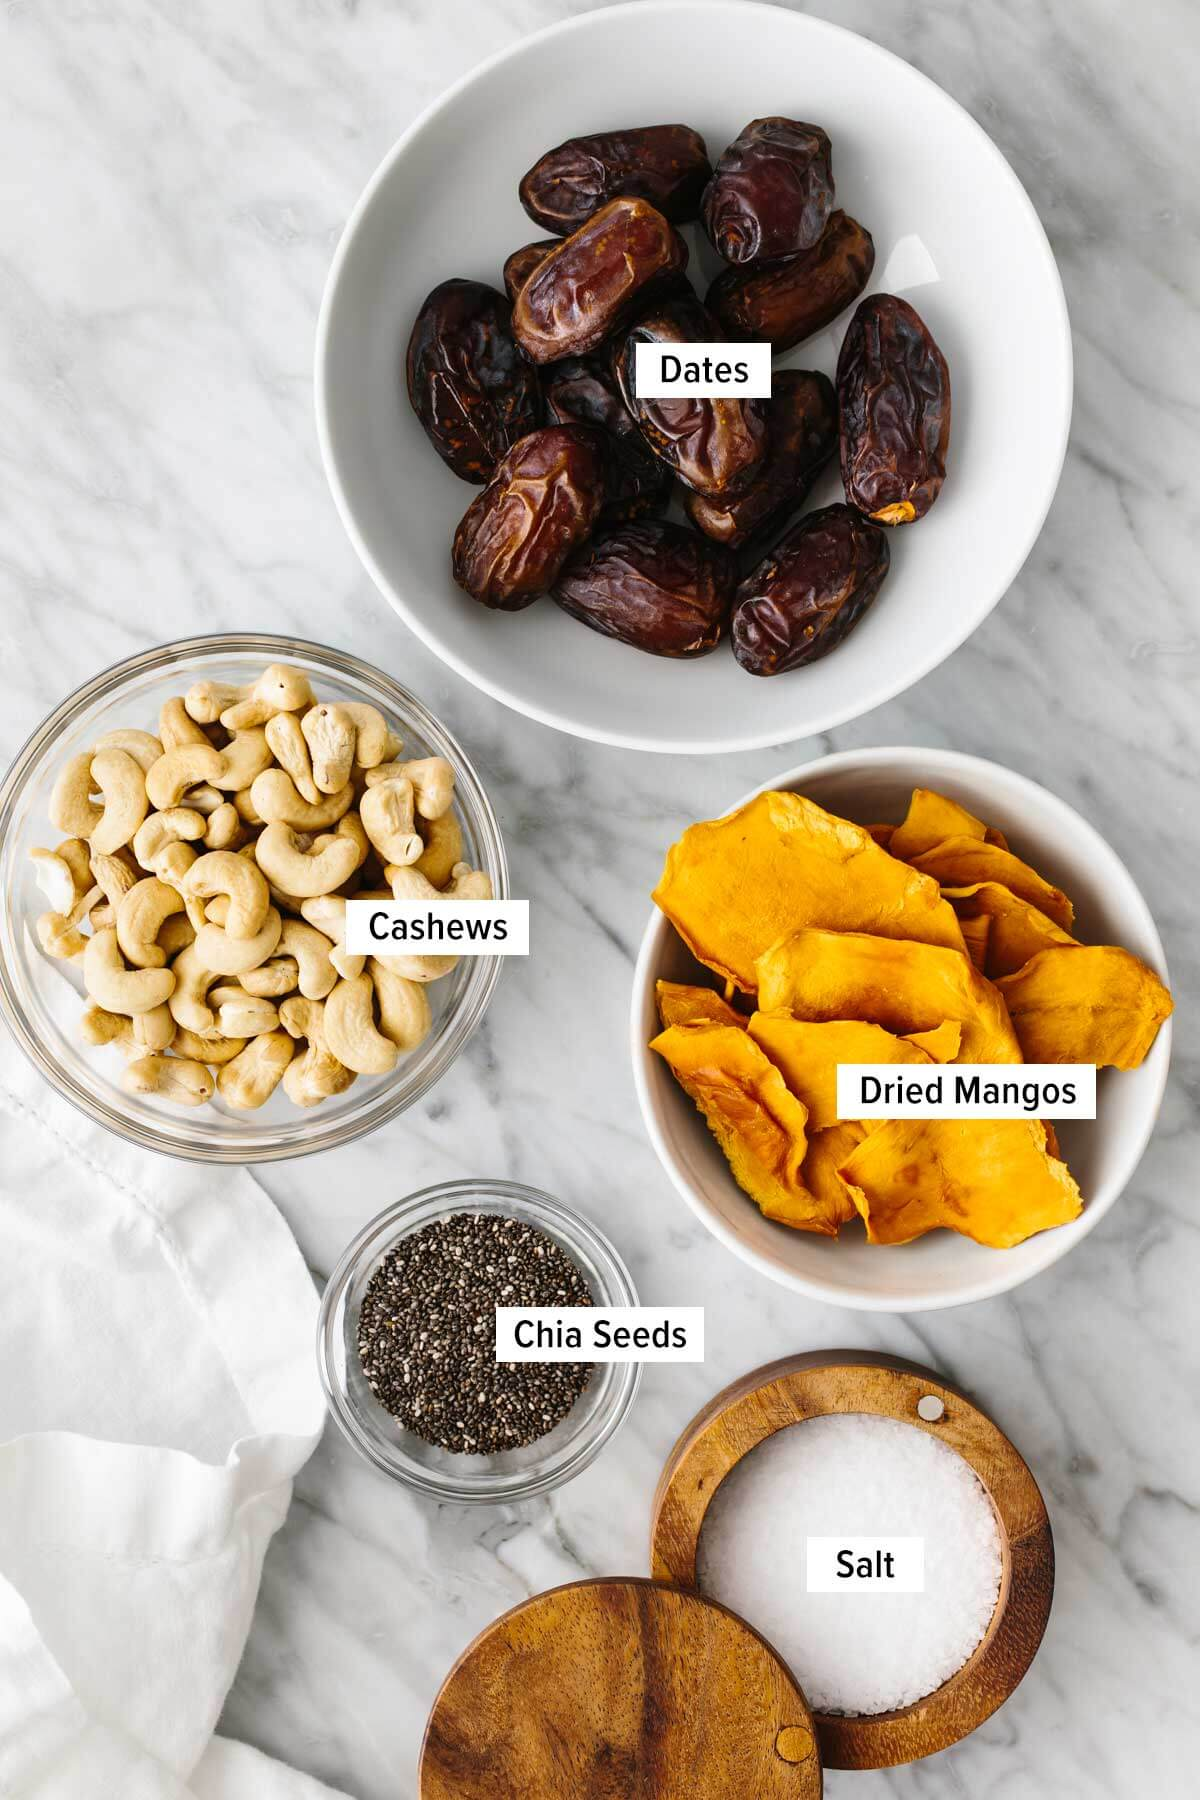 Ingredients for mango date energy balls on a table.